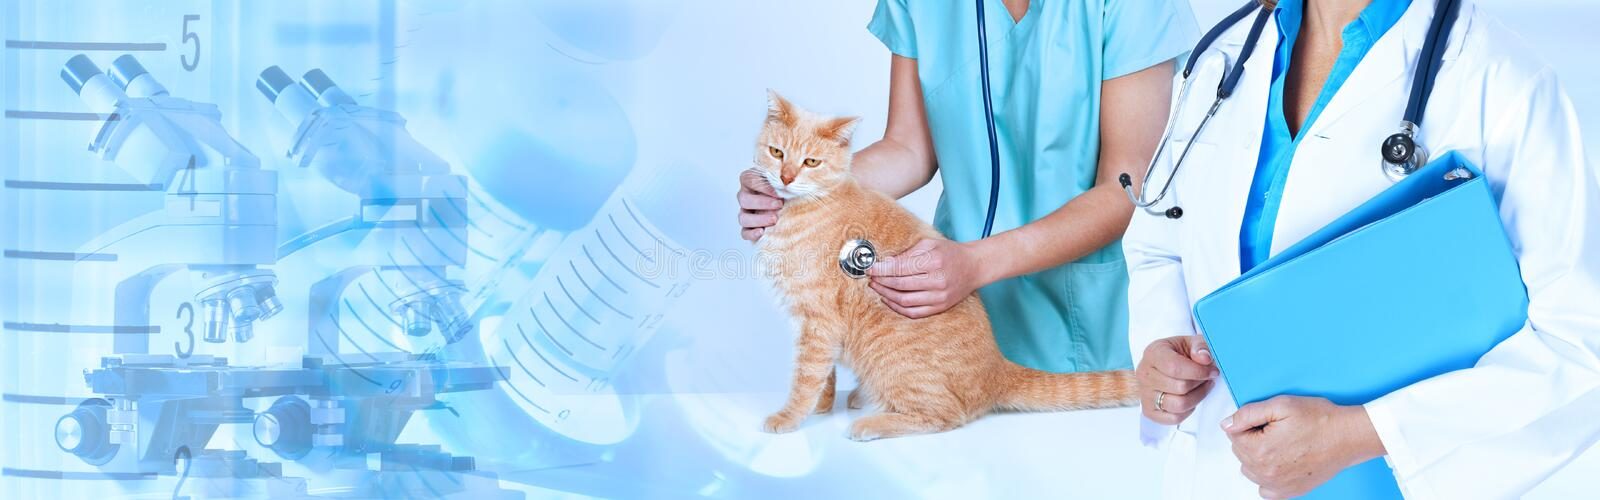 Veterinarian doctor with cat in veterinary clinic. stock images